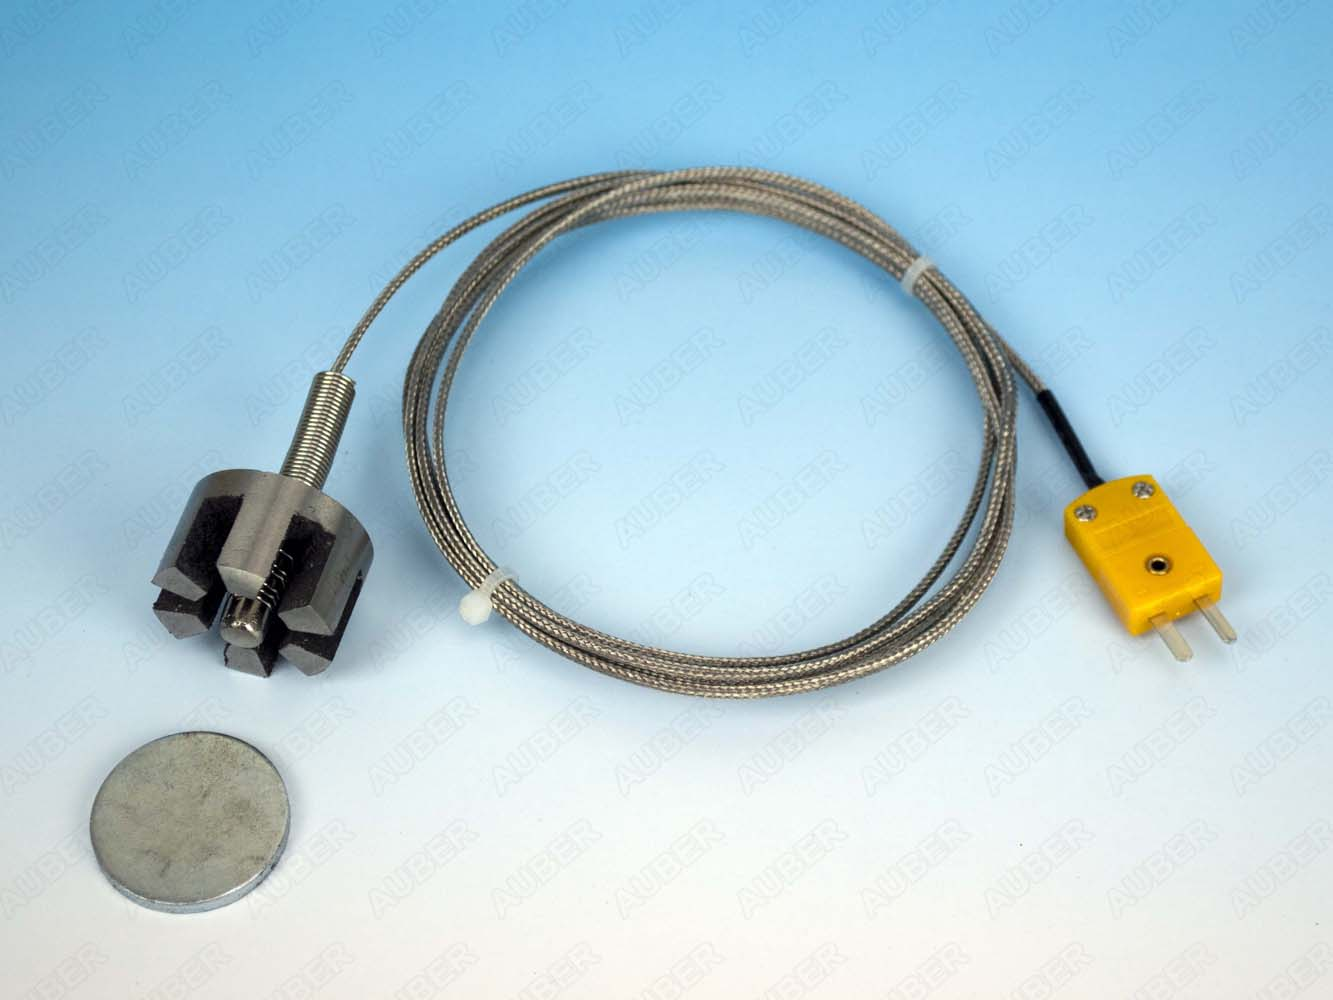 K Type Magnet Probe for Surfaces and Walls